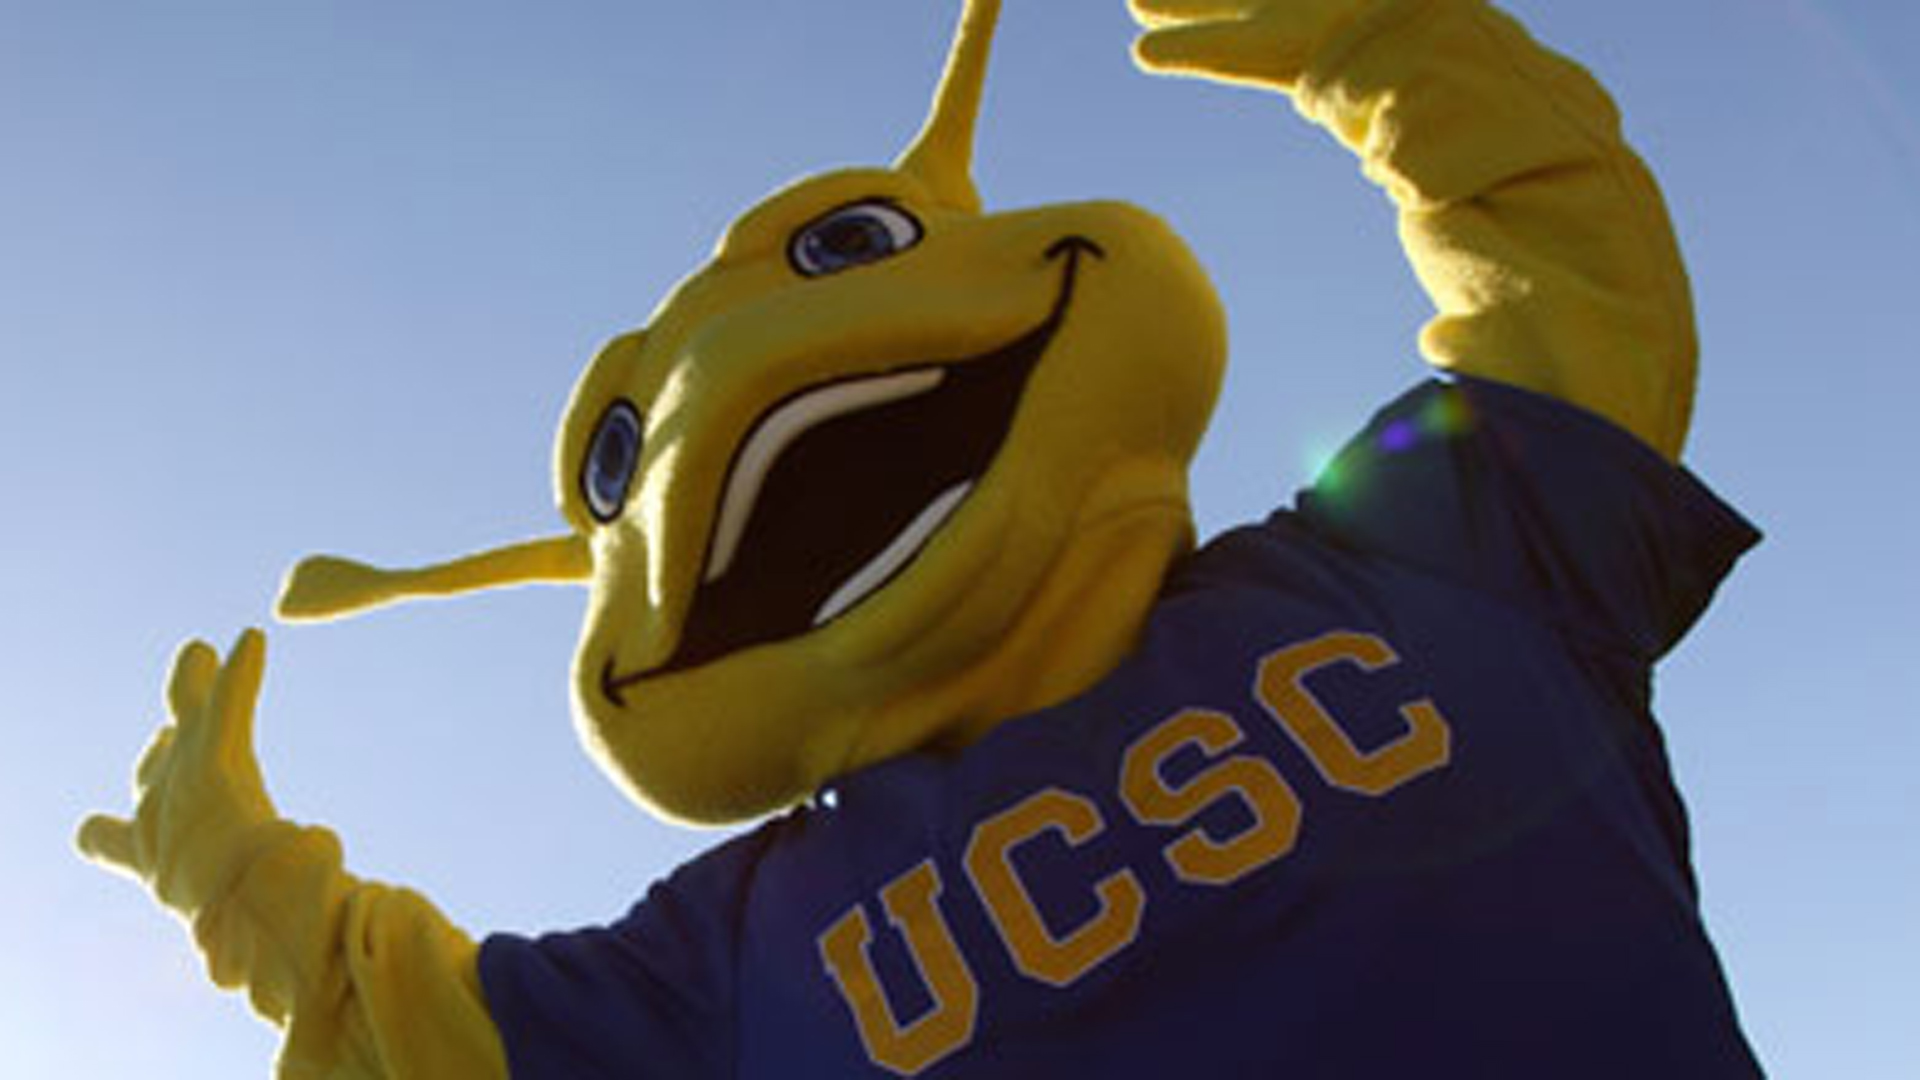 UC Santa Cruz posted this image of its banana slug mascot on the school website.